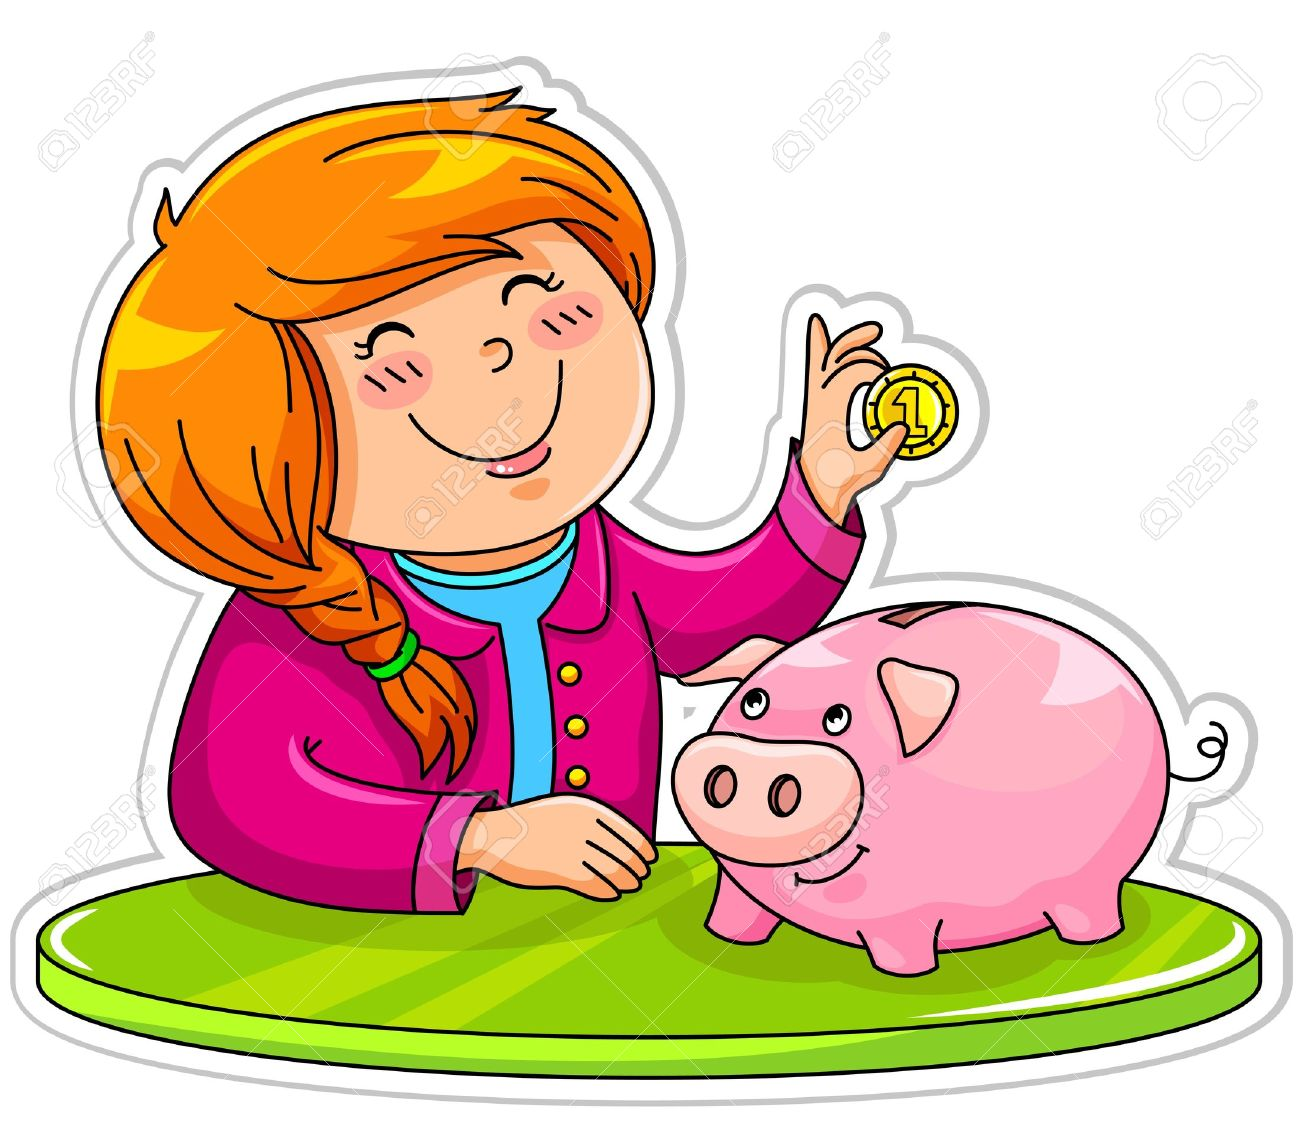 Save money clipart - Clipground